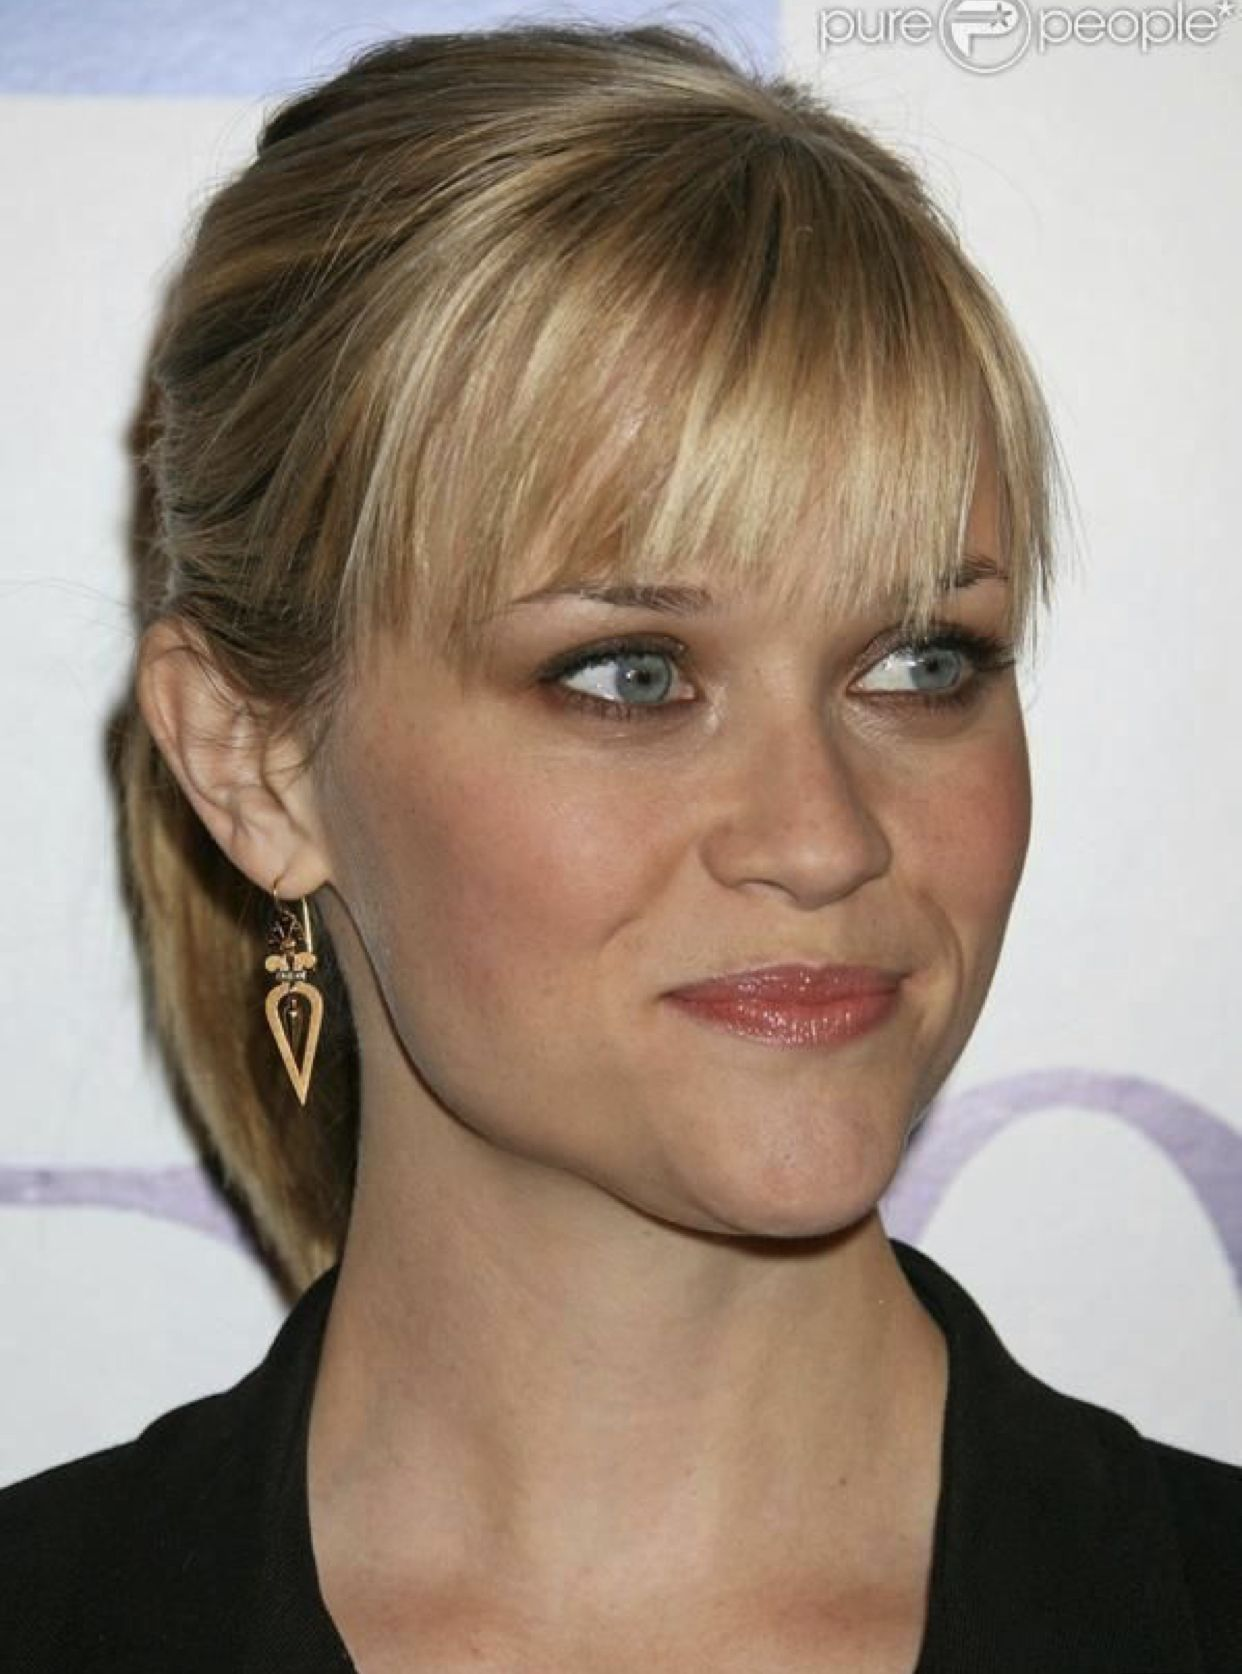 Pin By Joanna Maier On Hair Makeup Blonde Hair With Fringe Reese Witherspoon Hair Reece Witherspoon Hair